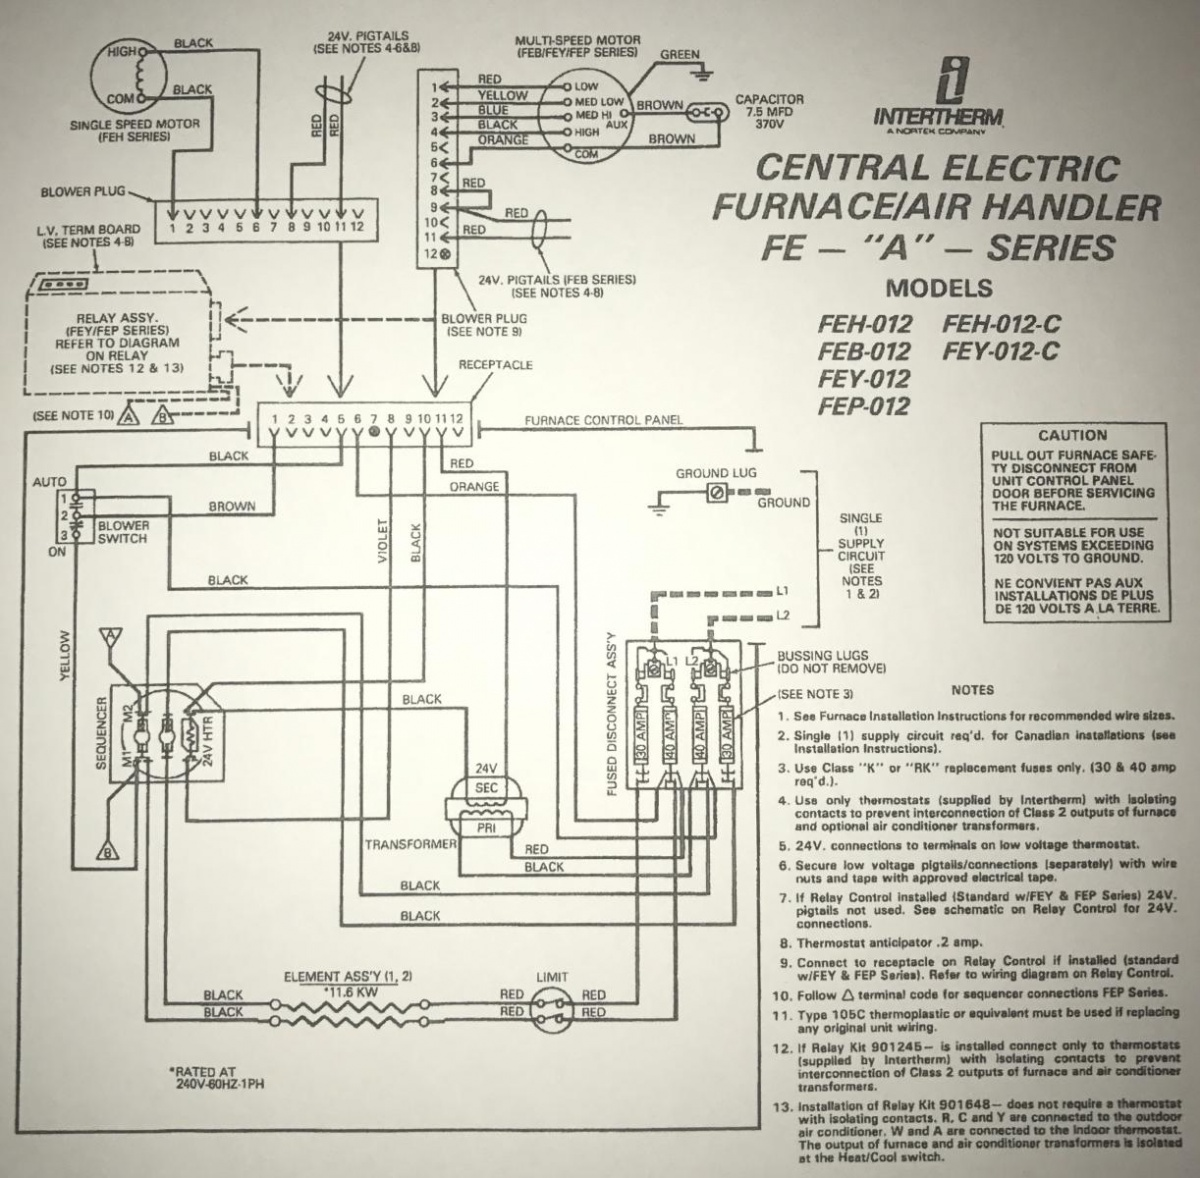 Is My Furnace Central Air Wired Correctly Hvac Diy Chatroom Home House Wiring Diagram Outdoor Condenser Img 1596 1504814408117